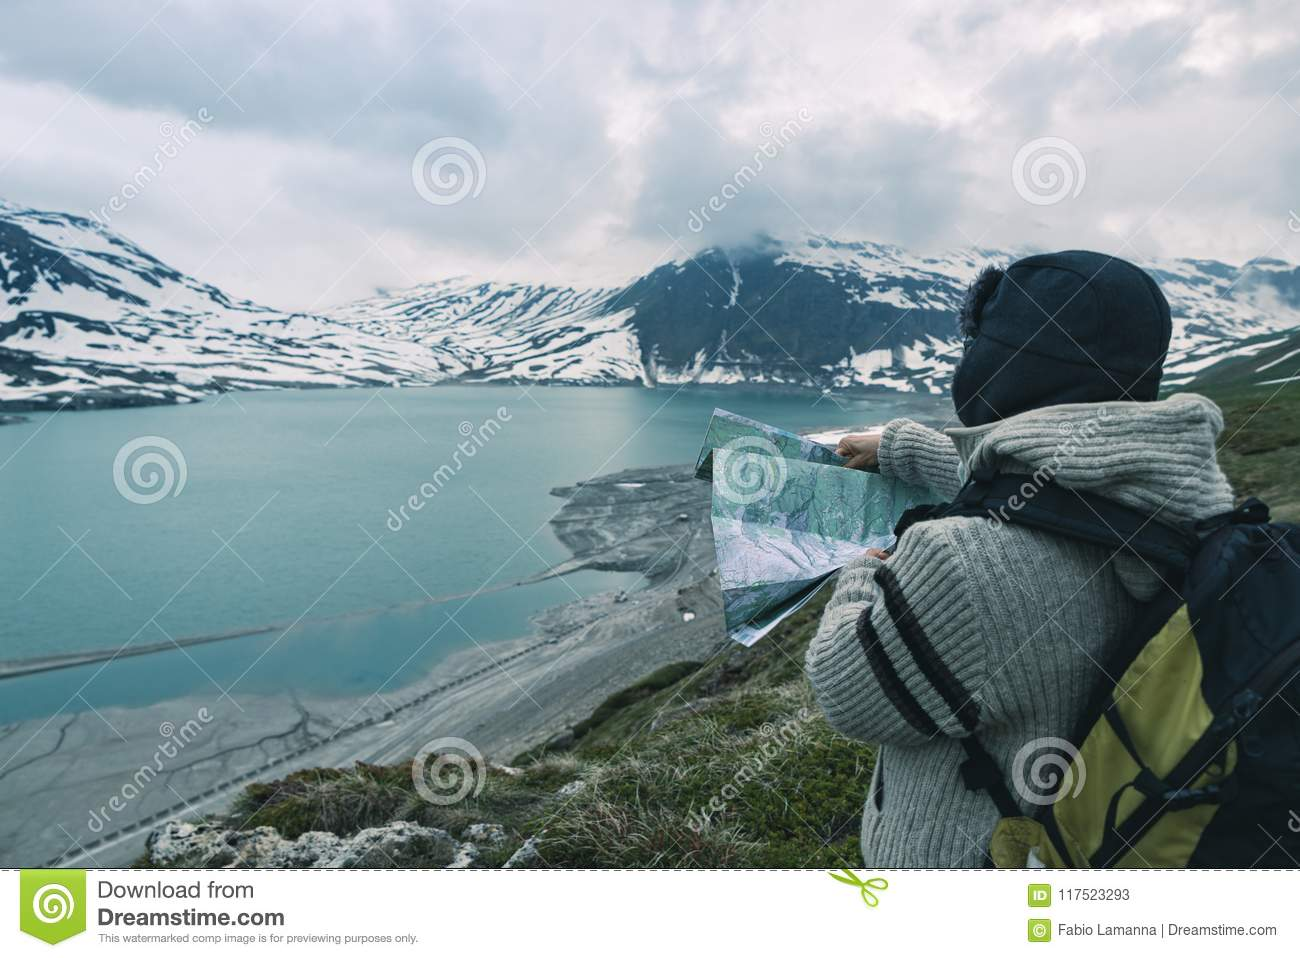 One person looking at trekking map, dramatic sky at dusk, lake and snowy mountains, nordic cold feeling